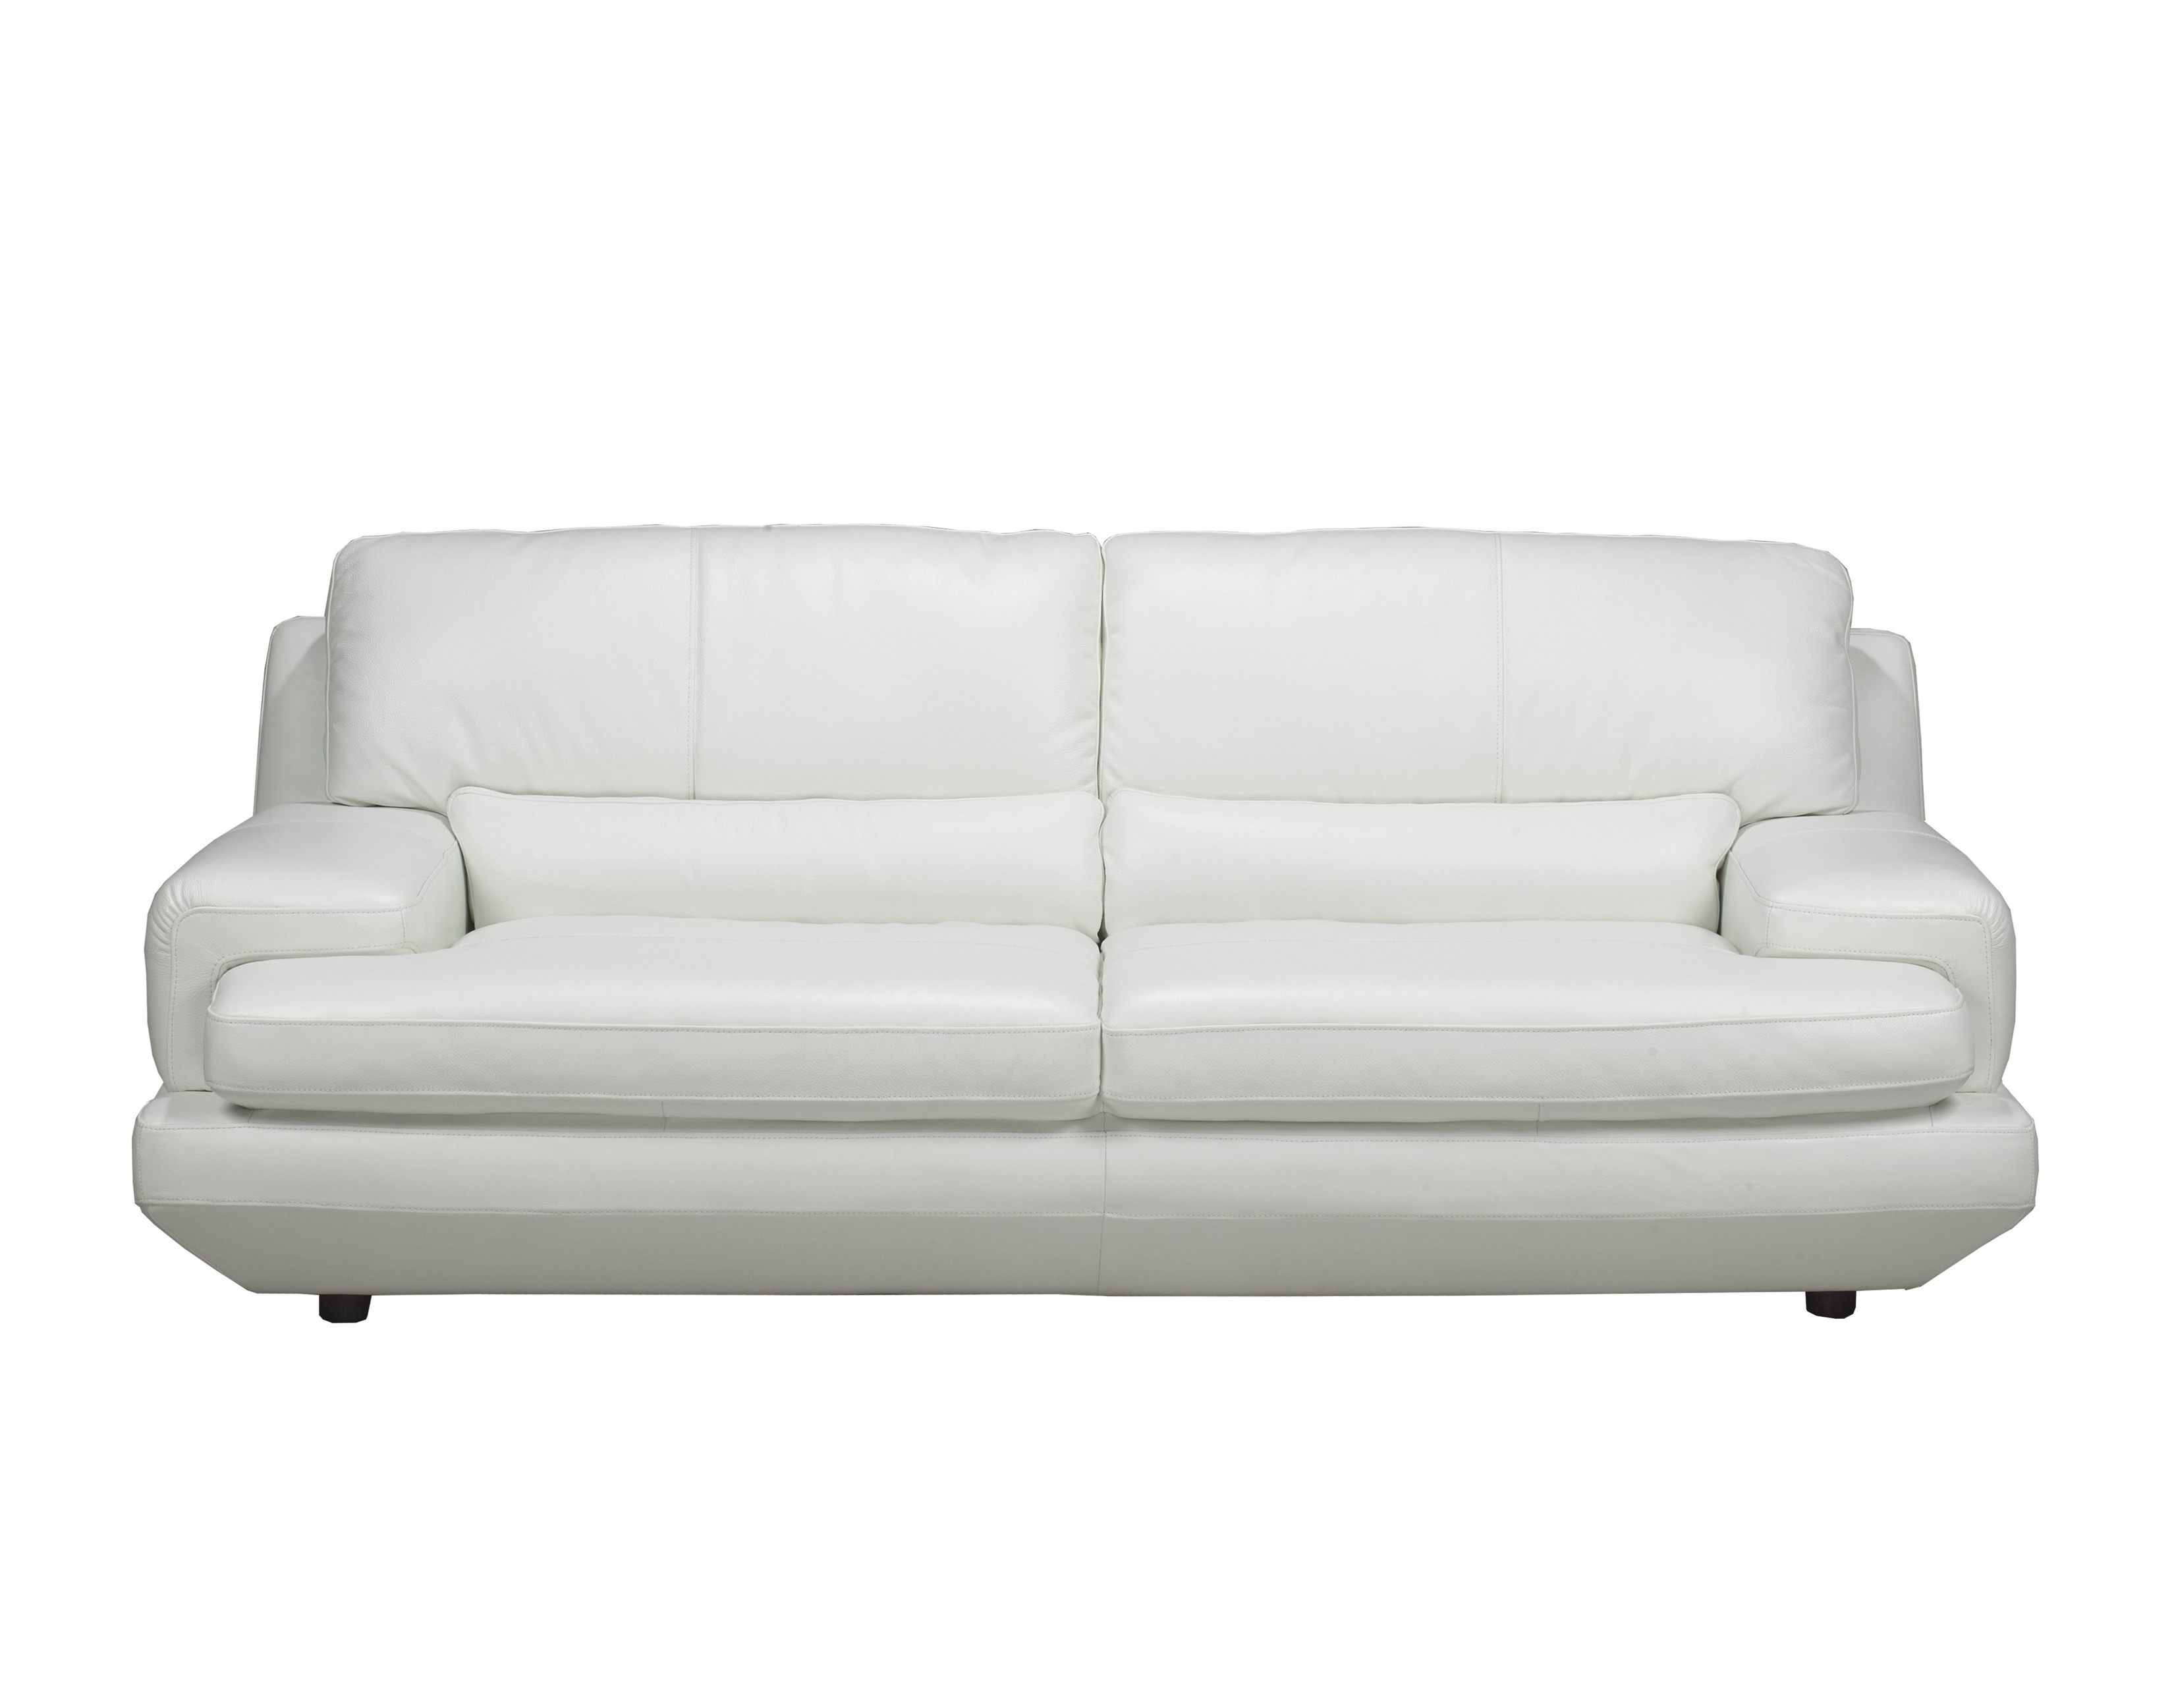 White Leather Sofas Inside Famous Decorating Black And White Leather Couch Pure Leather Sofa Set (View 10 of 15)